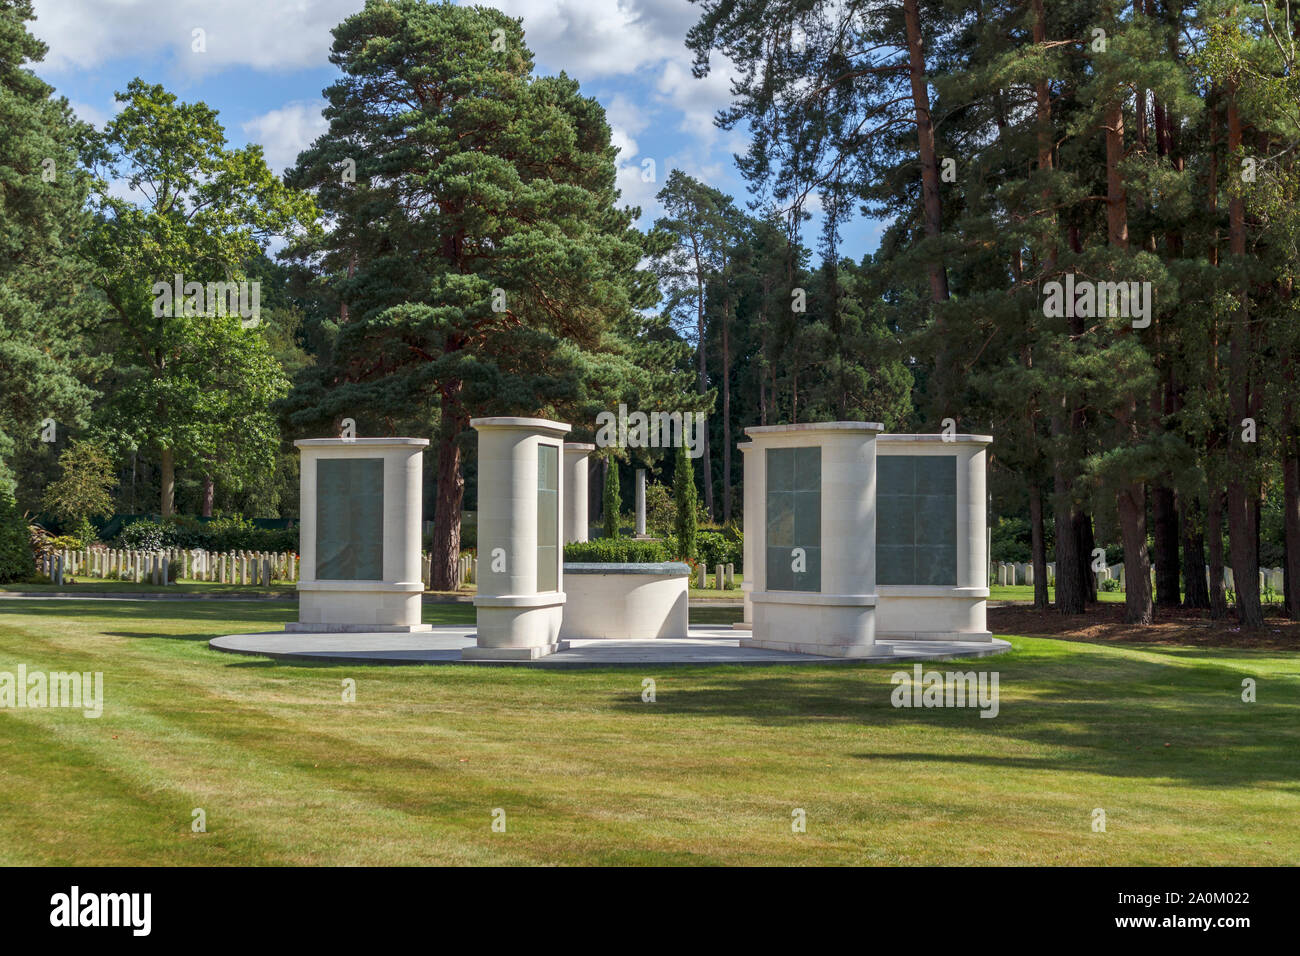 The Brookwood 1914-1918 Memorial in the Military Cemeteries at Brookwood Cemetery, Pirbright, Woking, Surrey, southeast England, UK Stock Photo